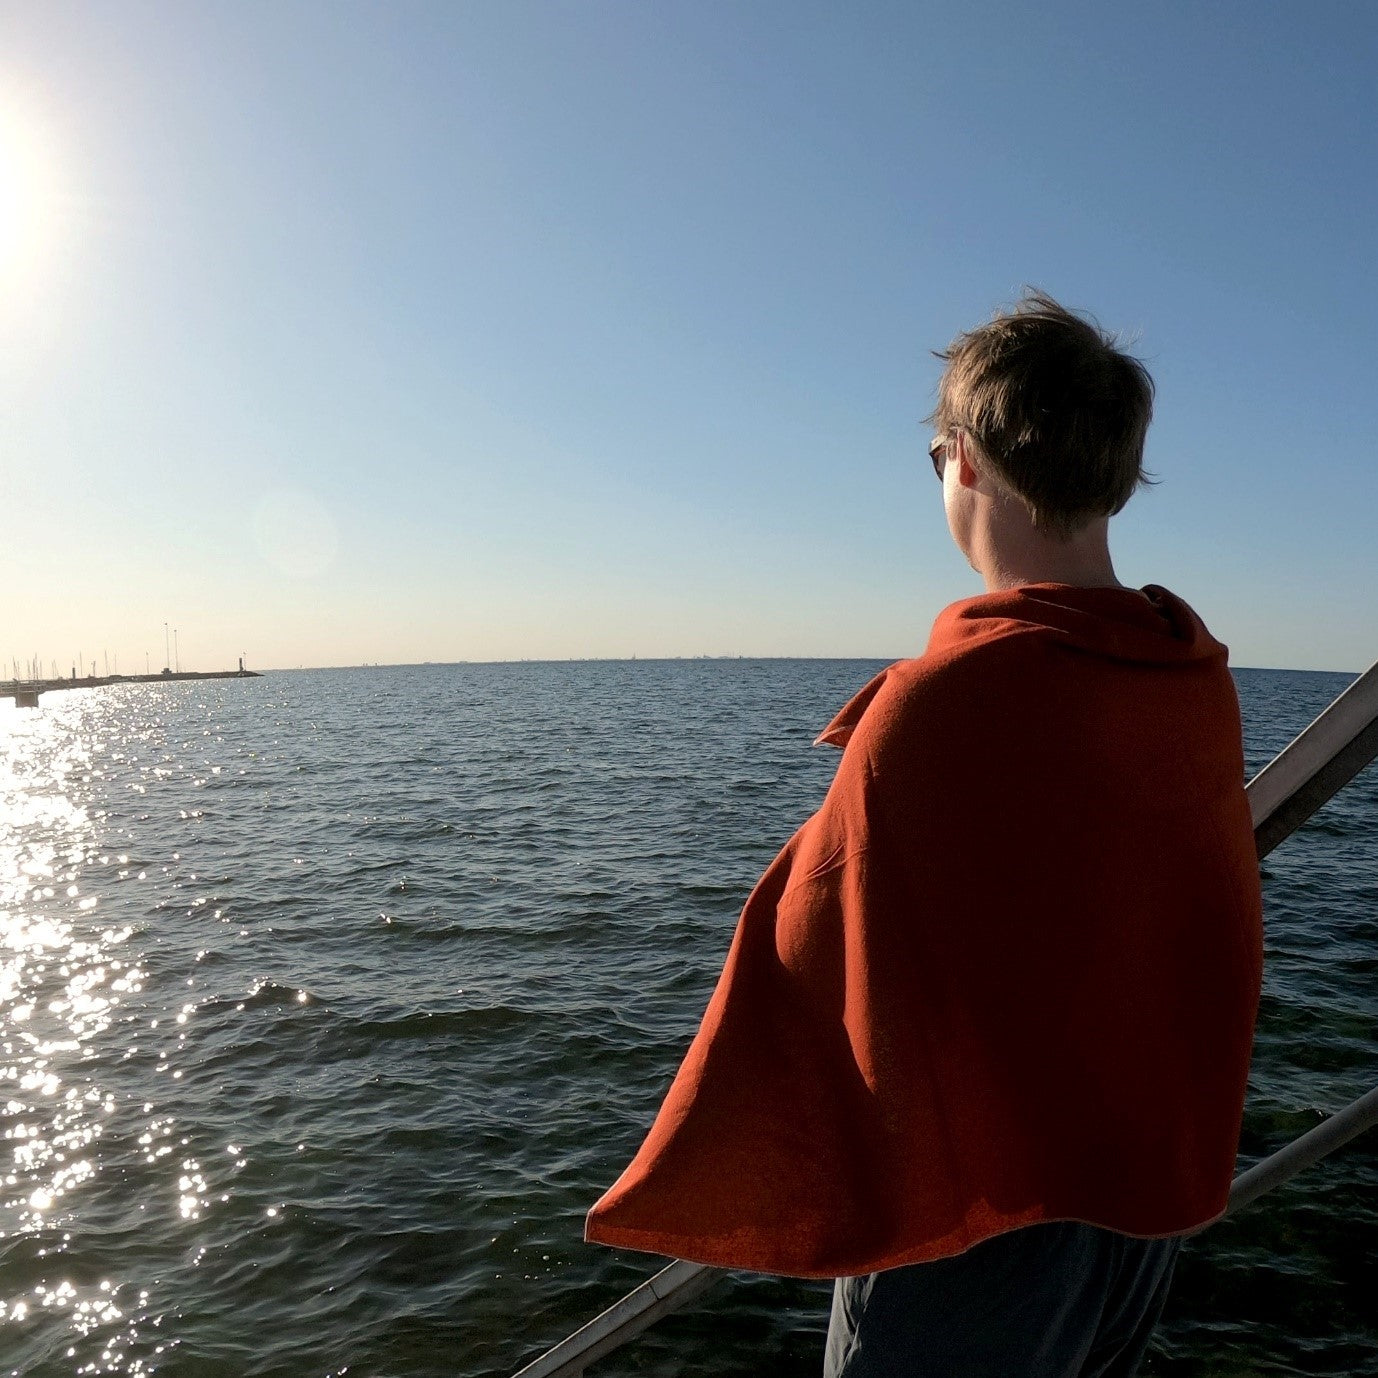 Man with Raw Silk Travel Towel Looking at the Sea, Chili Oil, Travel Outdoors | SHIN JARDBO